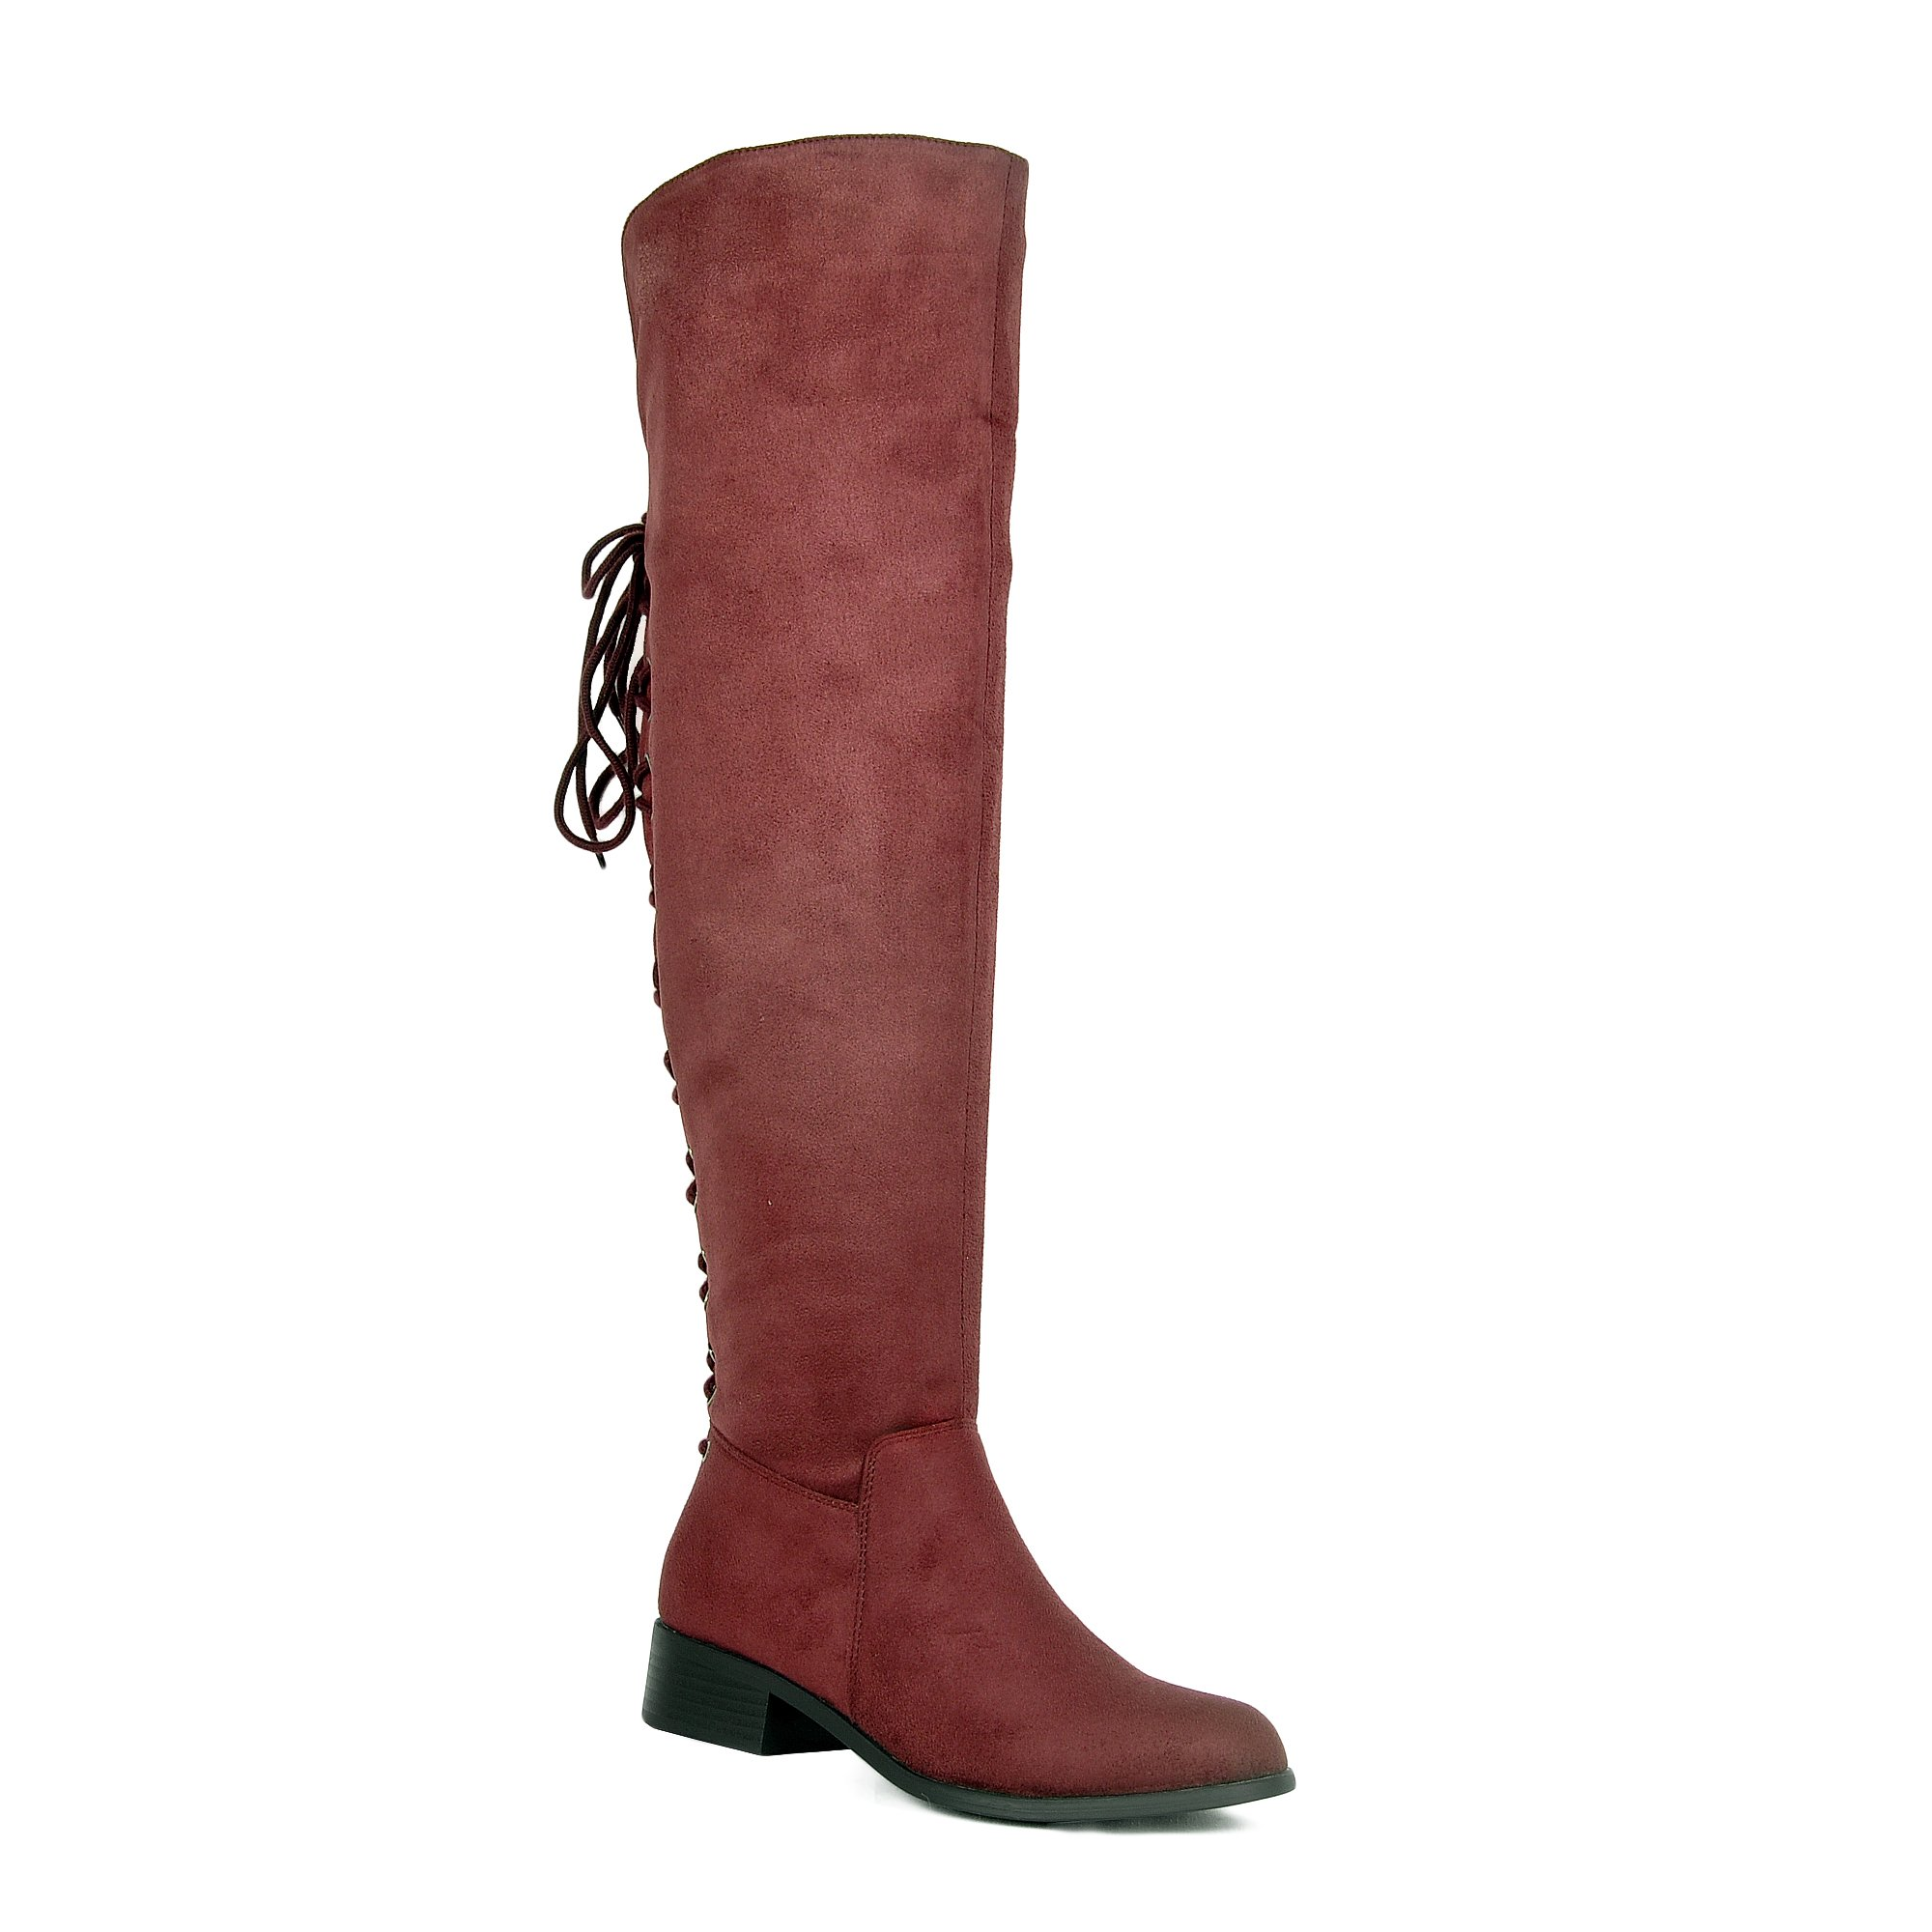 WestCoast Women's Over The Knee Boots Back Corset Lace up Fold Cuff Back Tie Flat Knee High Dress Riding Boots Burgundy 8